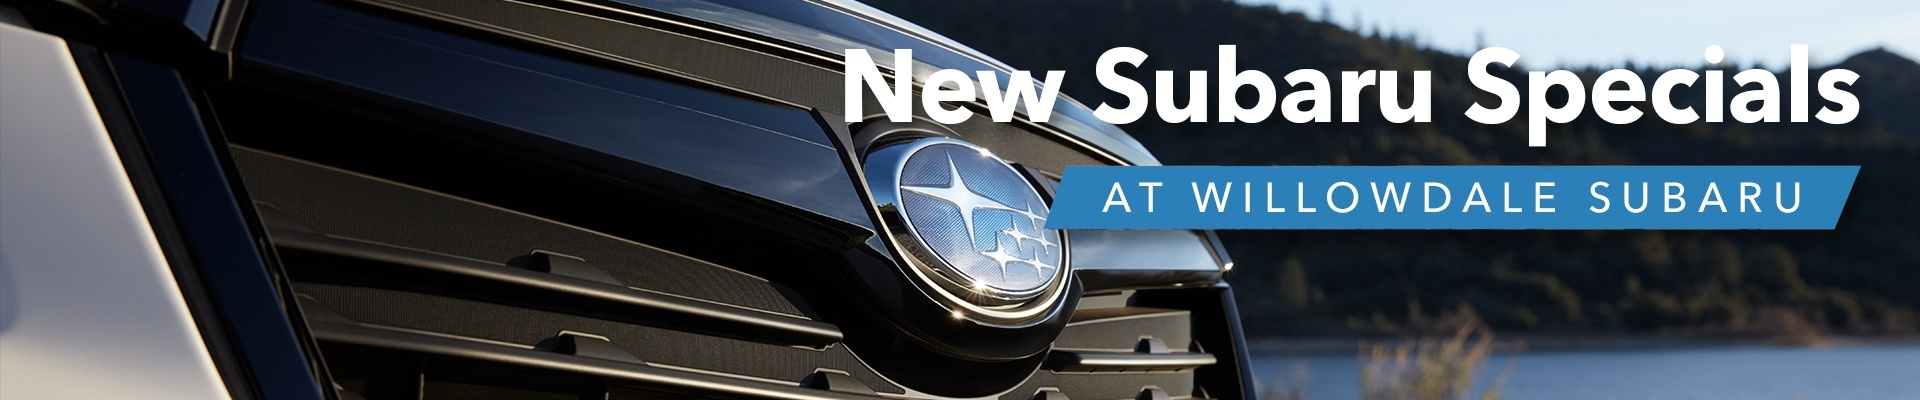 Willowdale Subaru New Subaru Specials